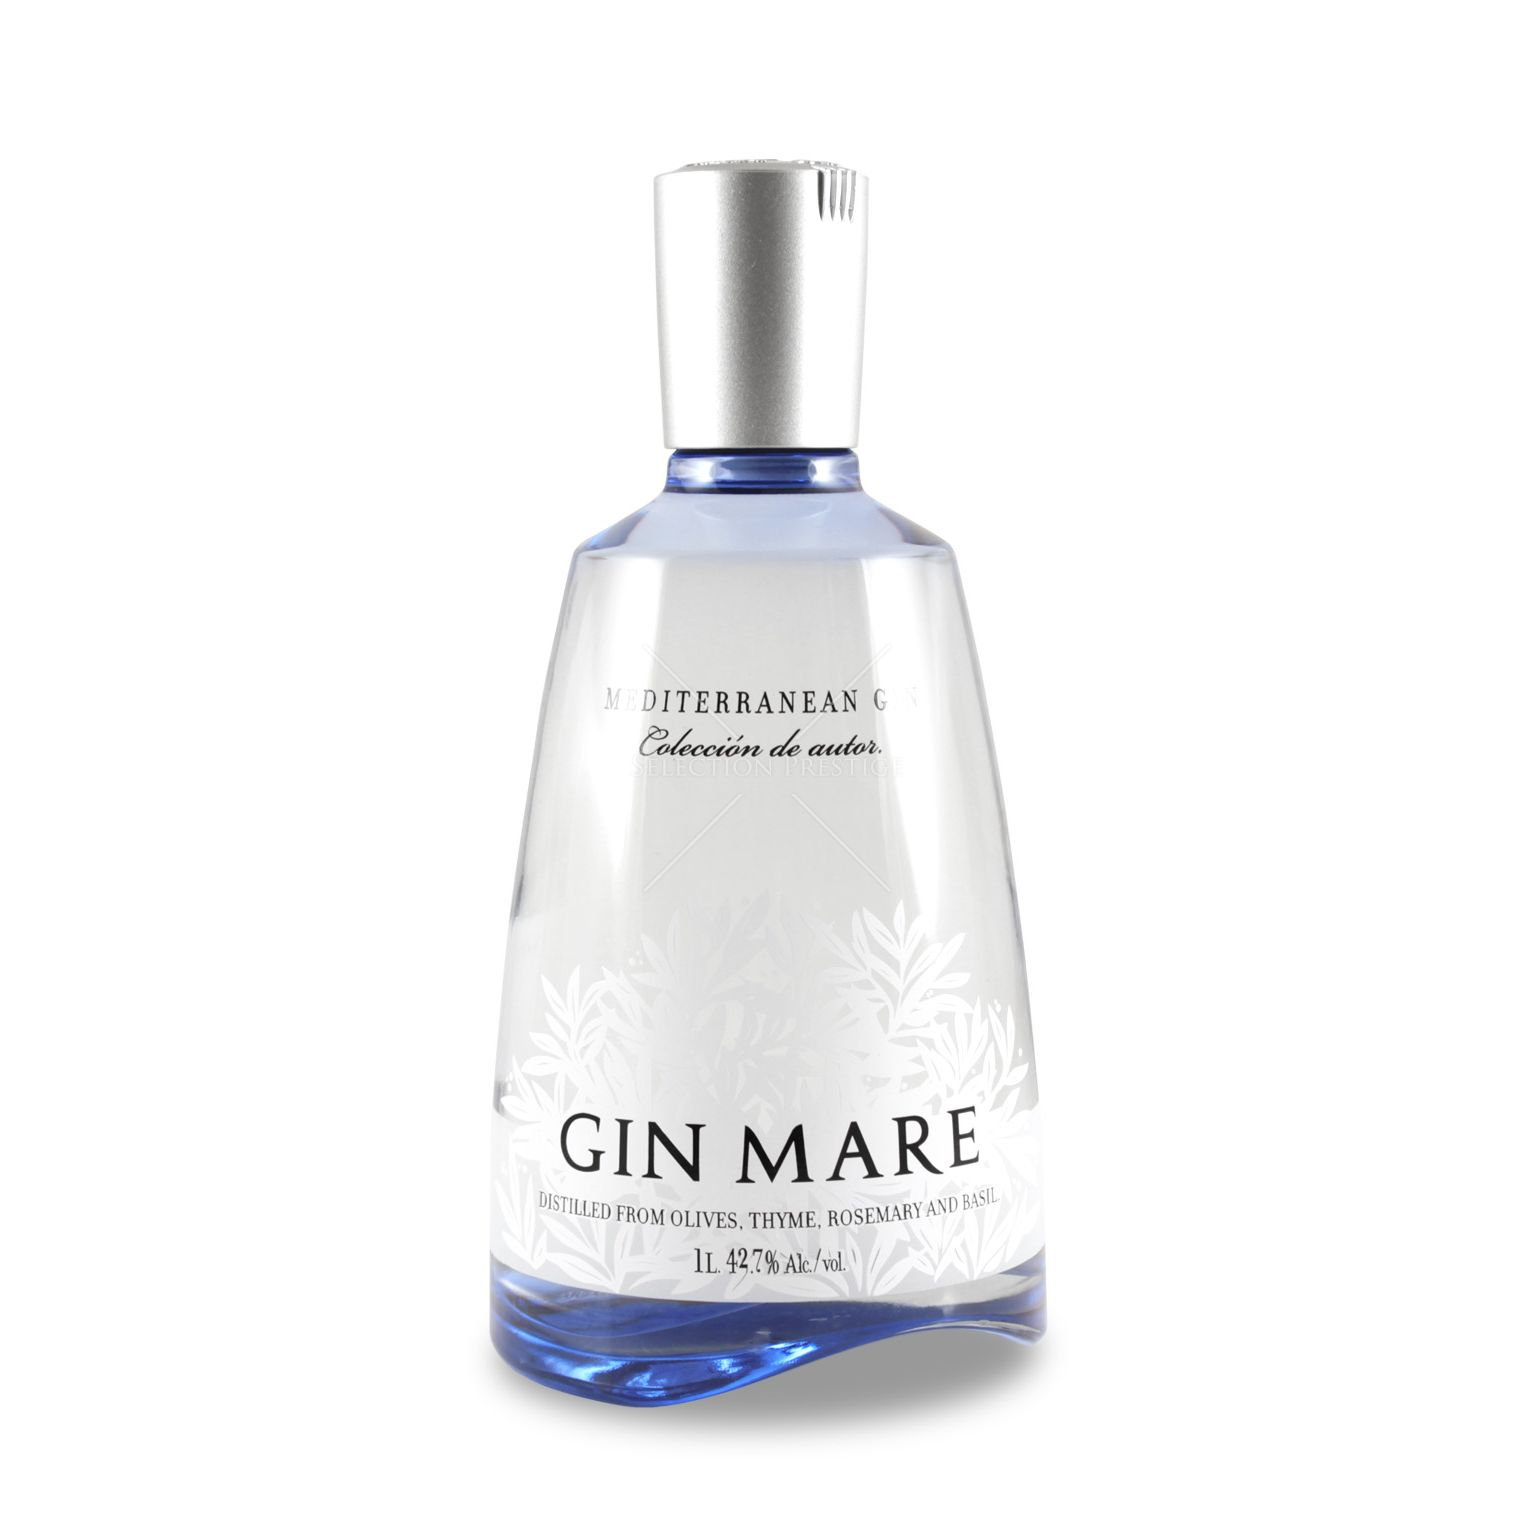 GIN MARE GIN 100cl